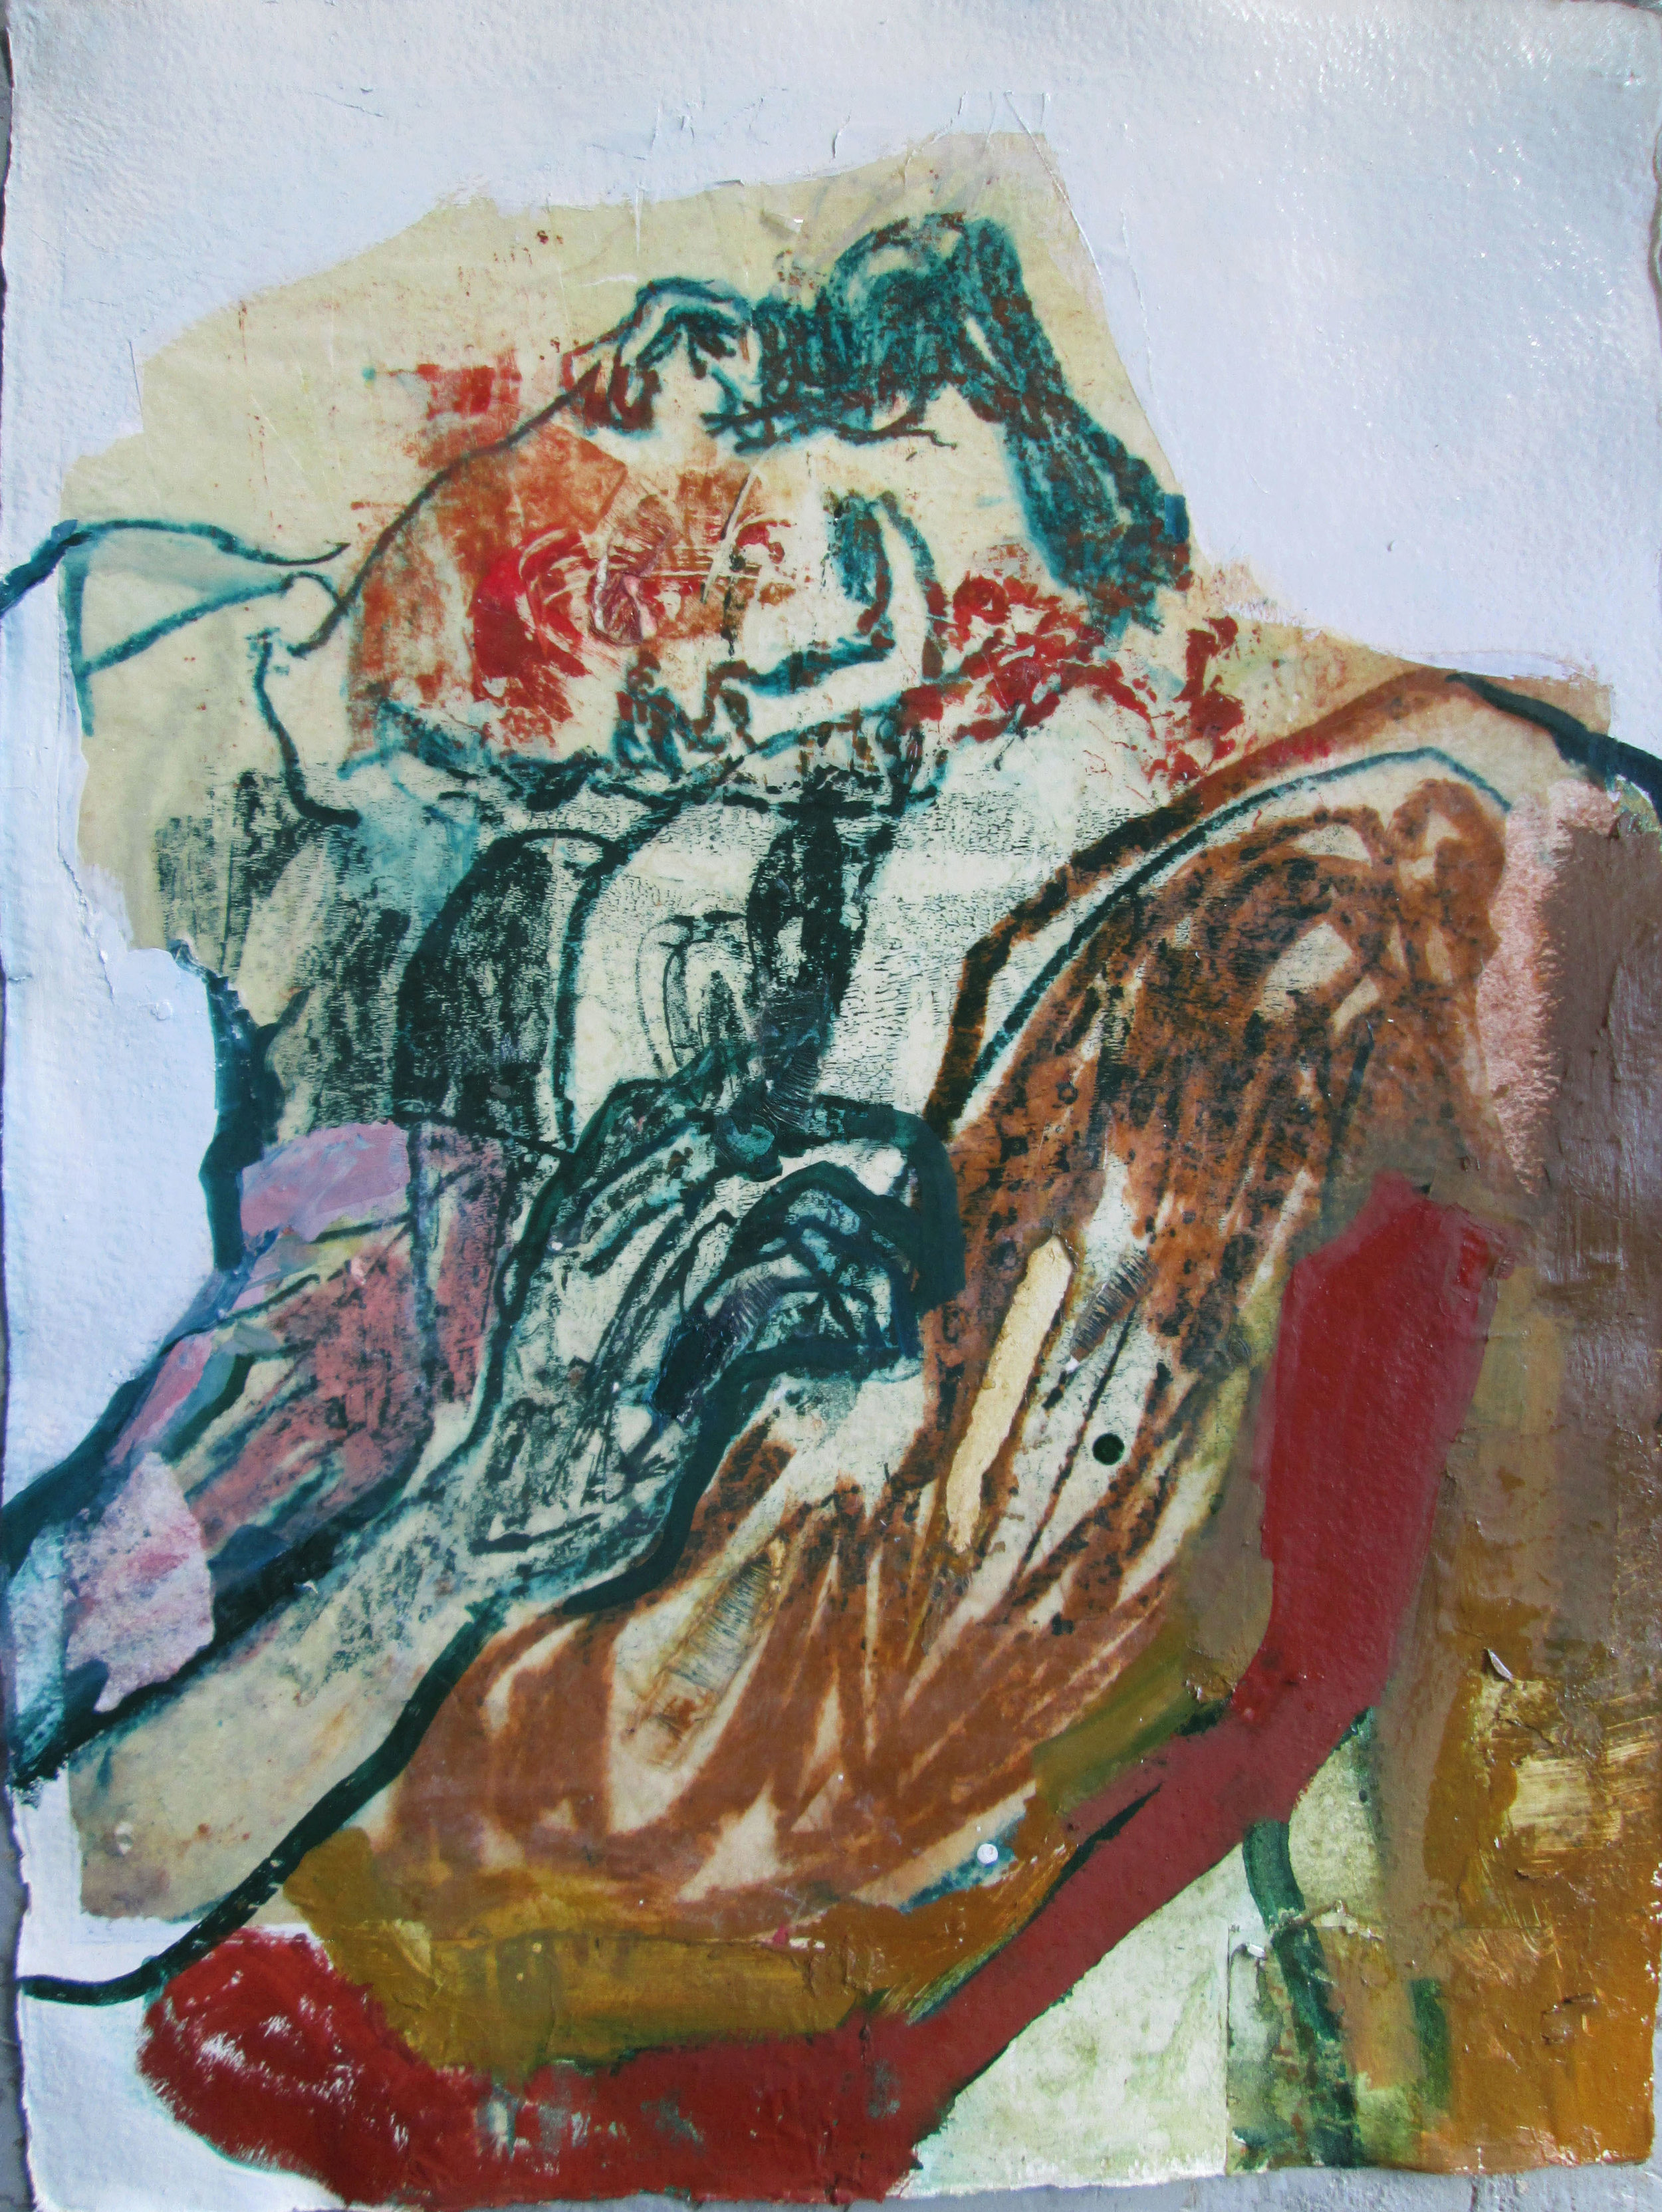 Title: A Burning Lance  Size: 80 x 62 cm  Medium: Oil and pastel on paper  Price:£2200